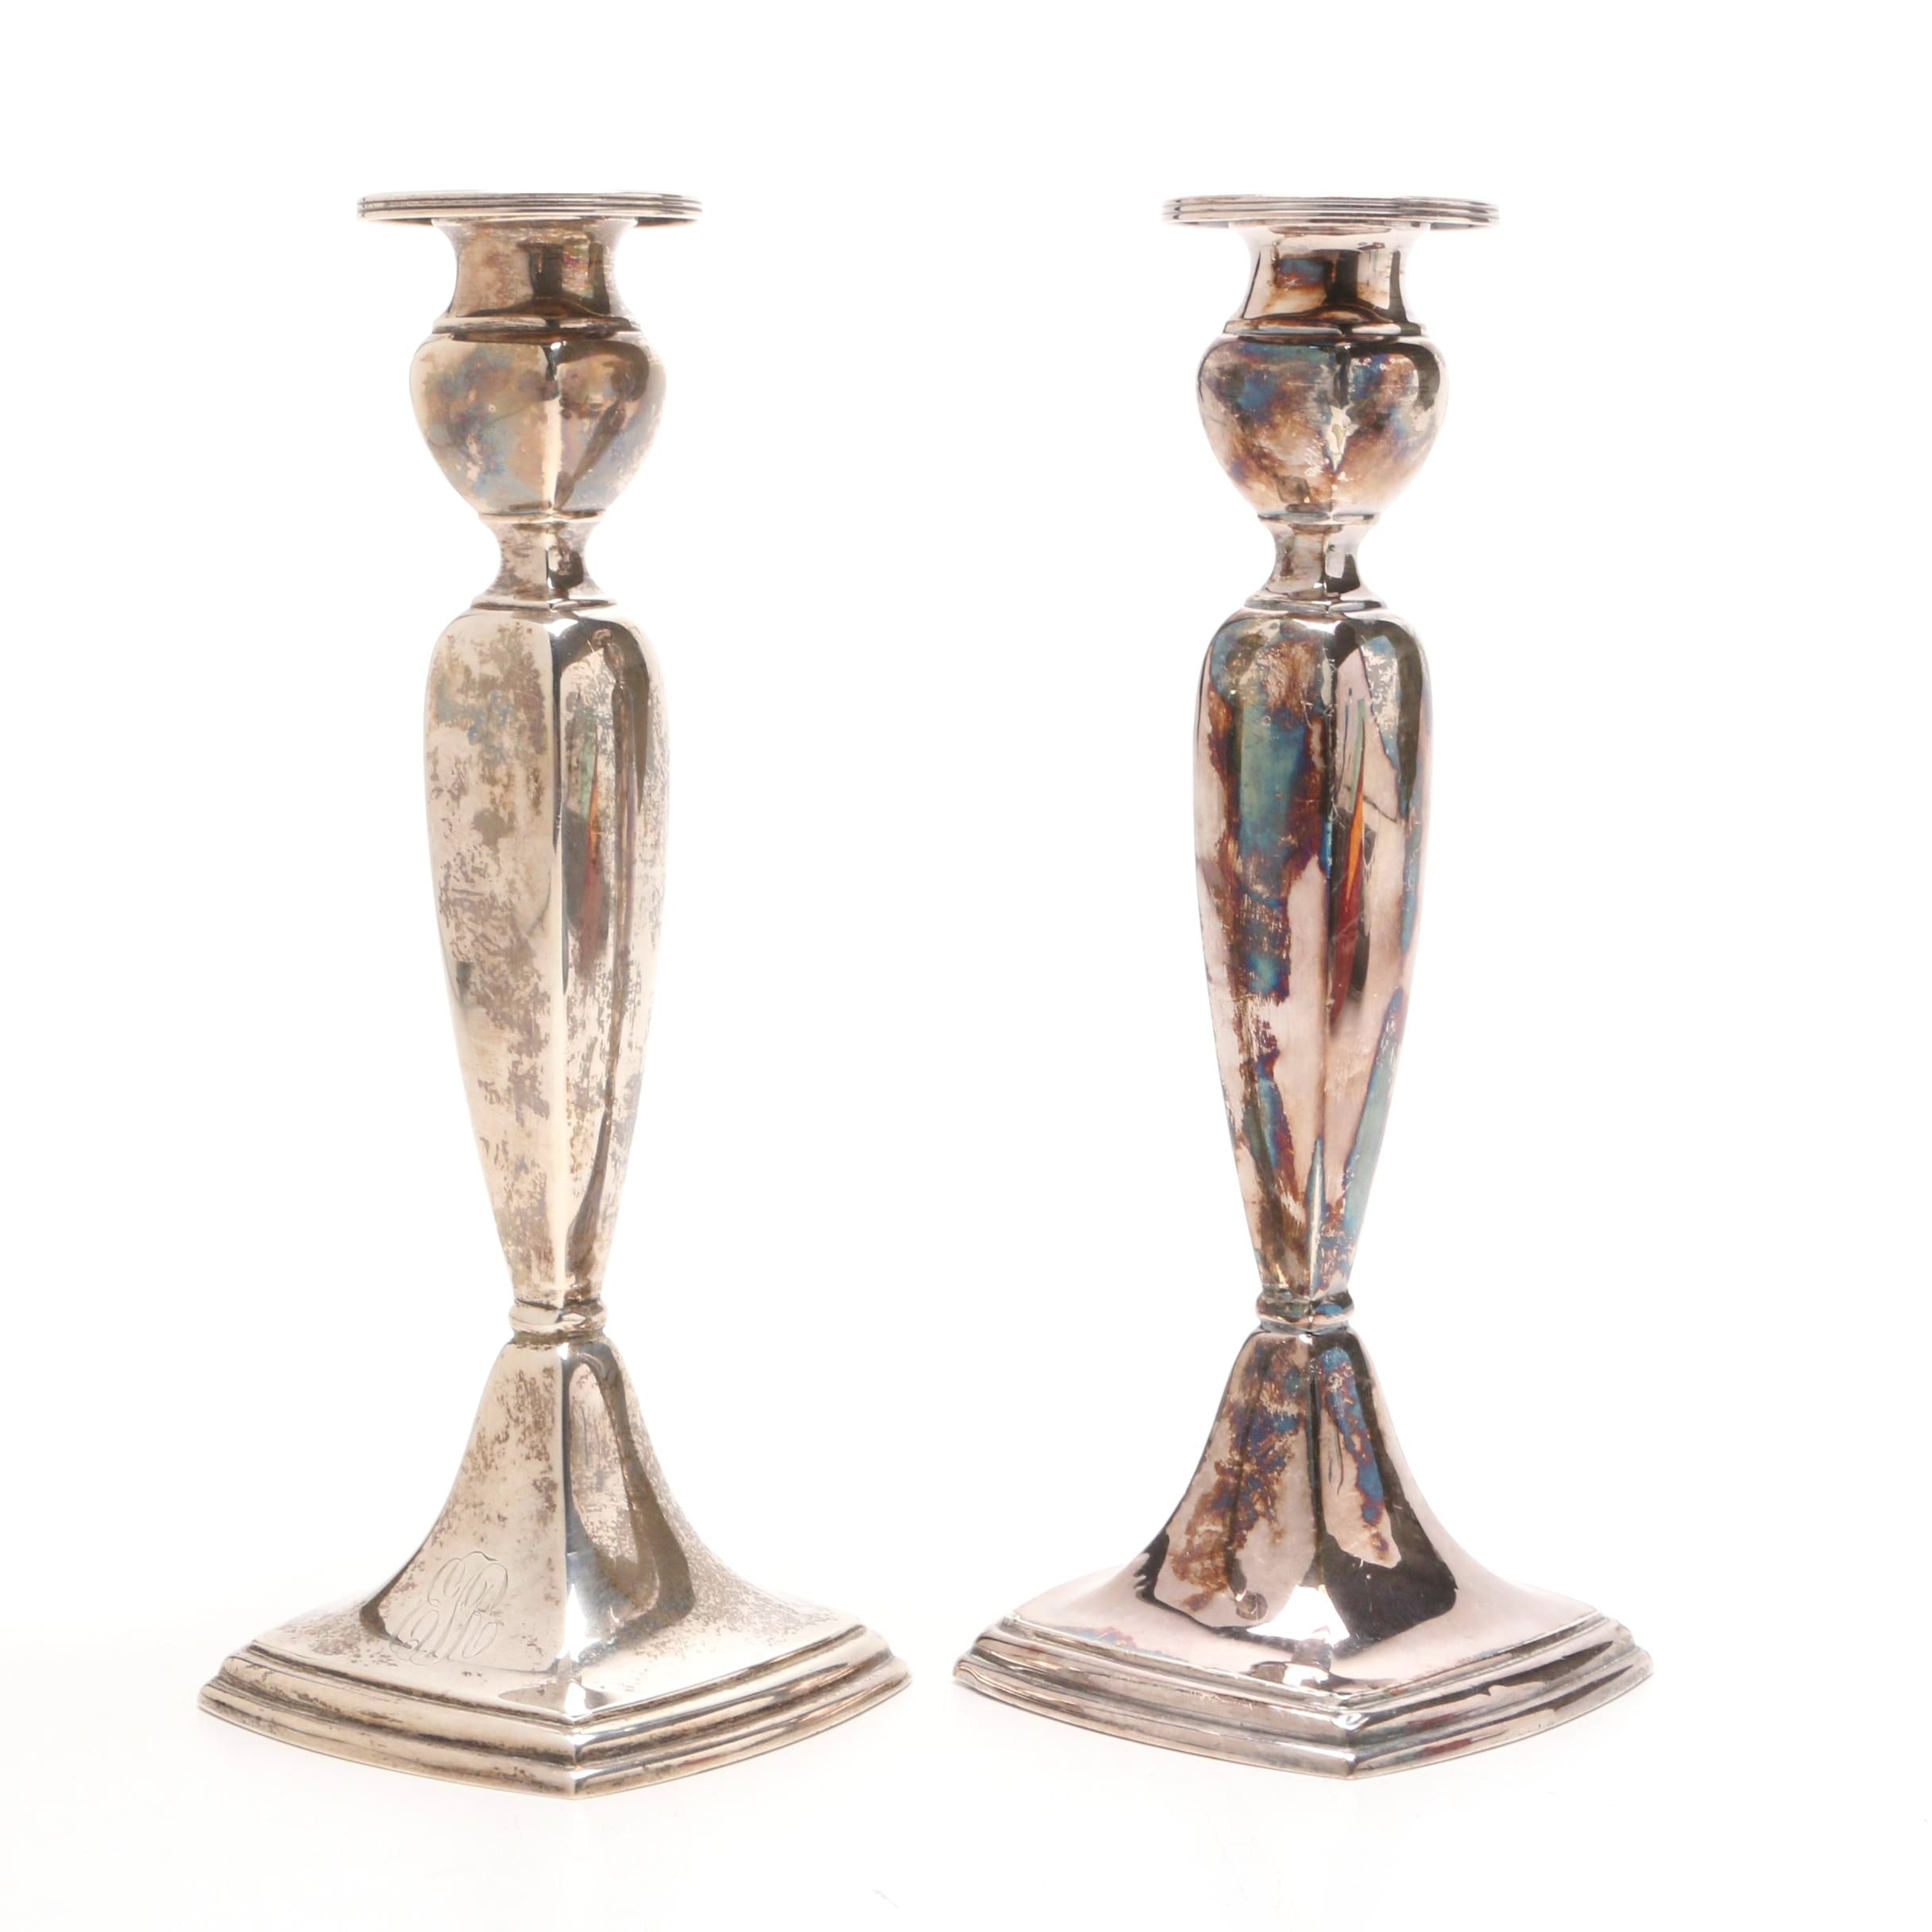 Vintage La Pierre Weighted Sterling Silver Candlesticks